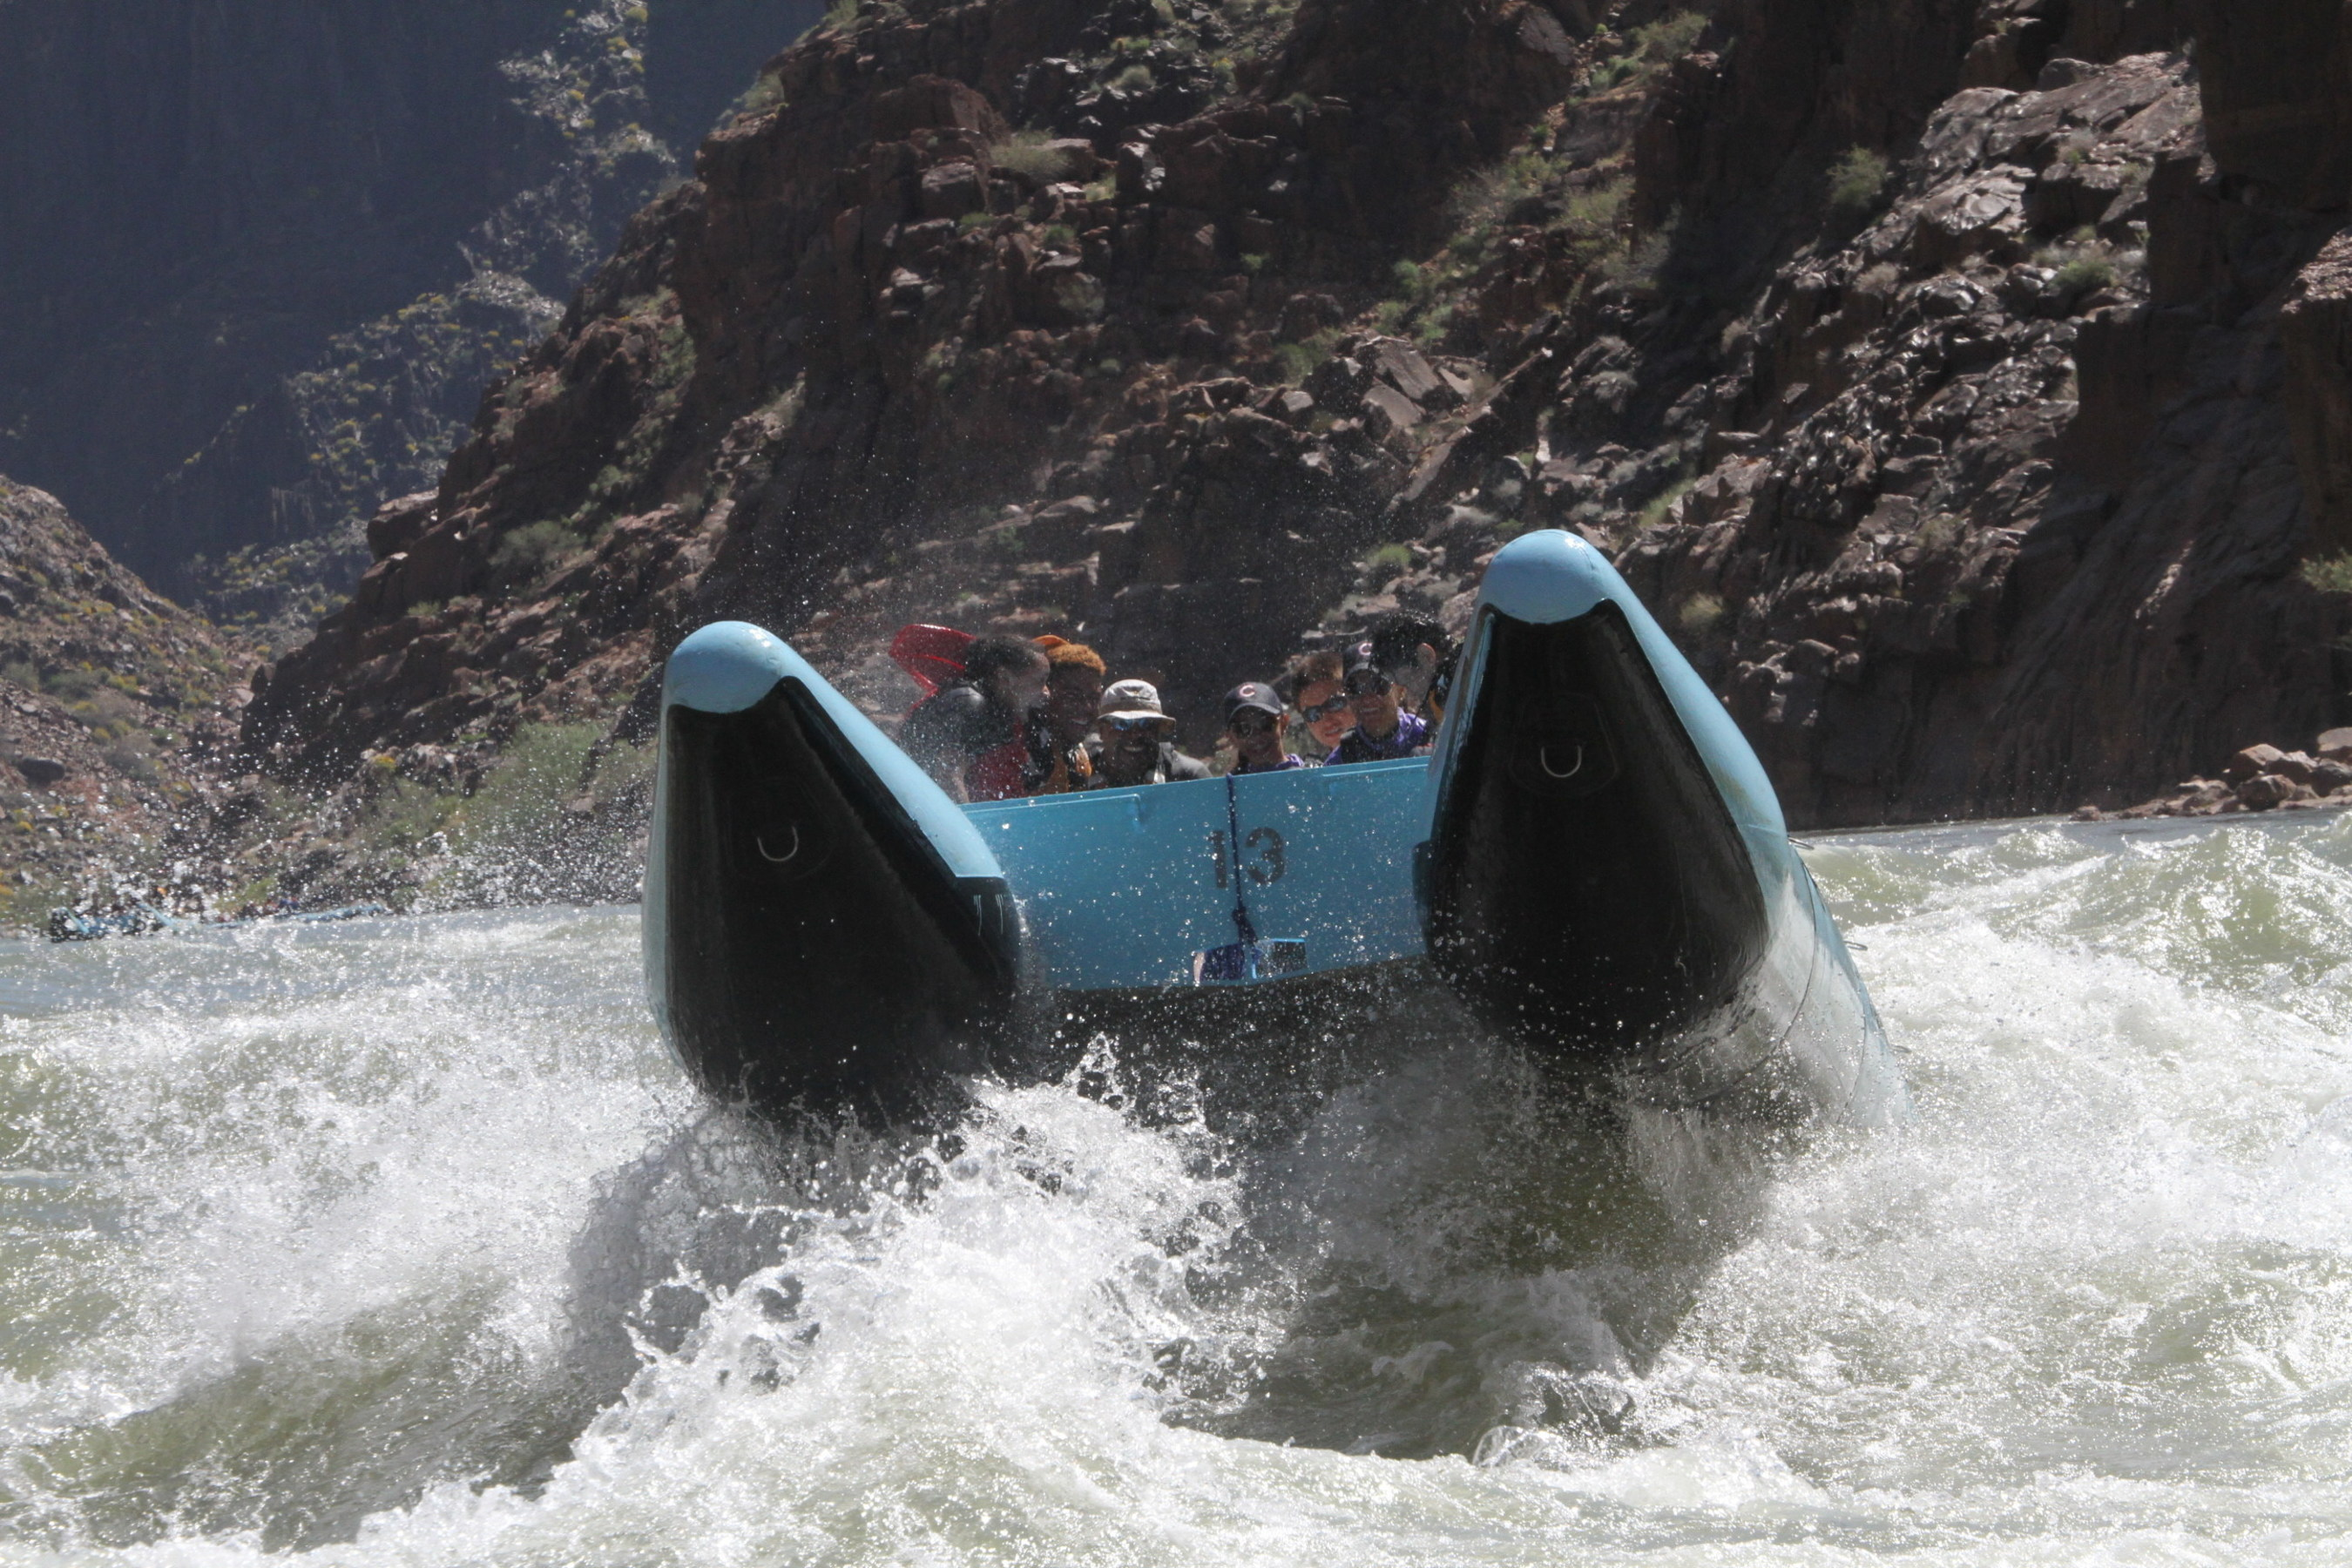 The Grand Canyon West Family Bucket List contest runs until 8/31/16. One family of up to 4 people will win a free adventure rafting the Colorado River through the Grand Canyon led by the Hualapai River Runners' experienced guides.